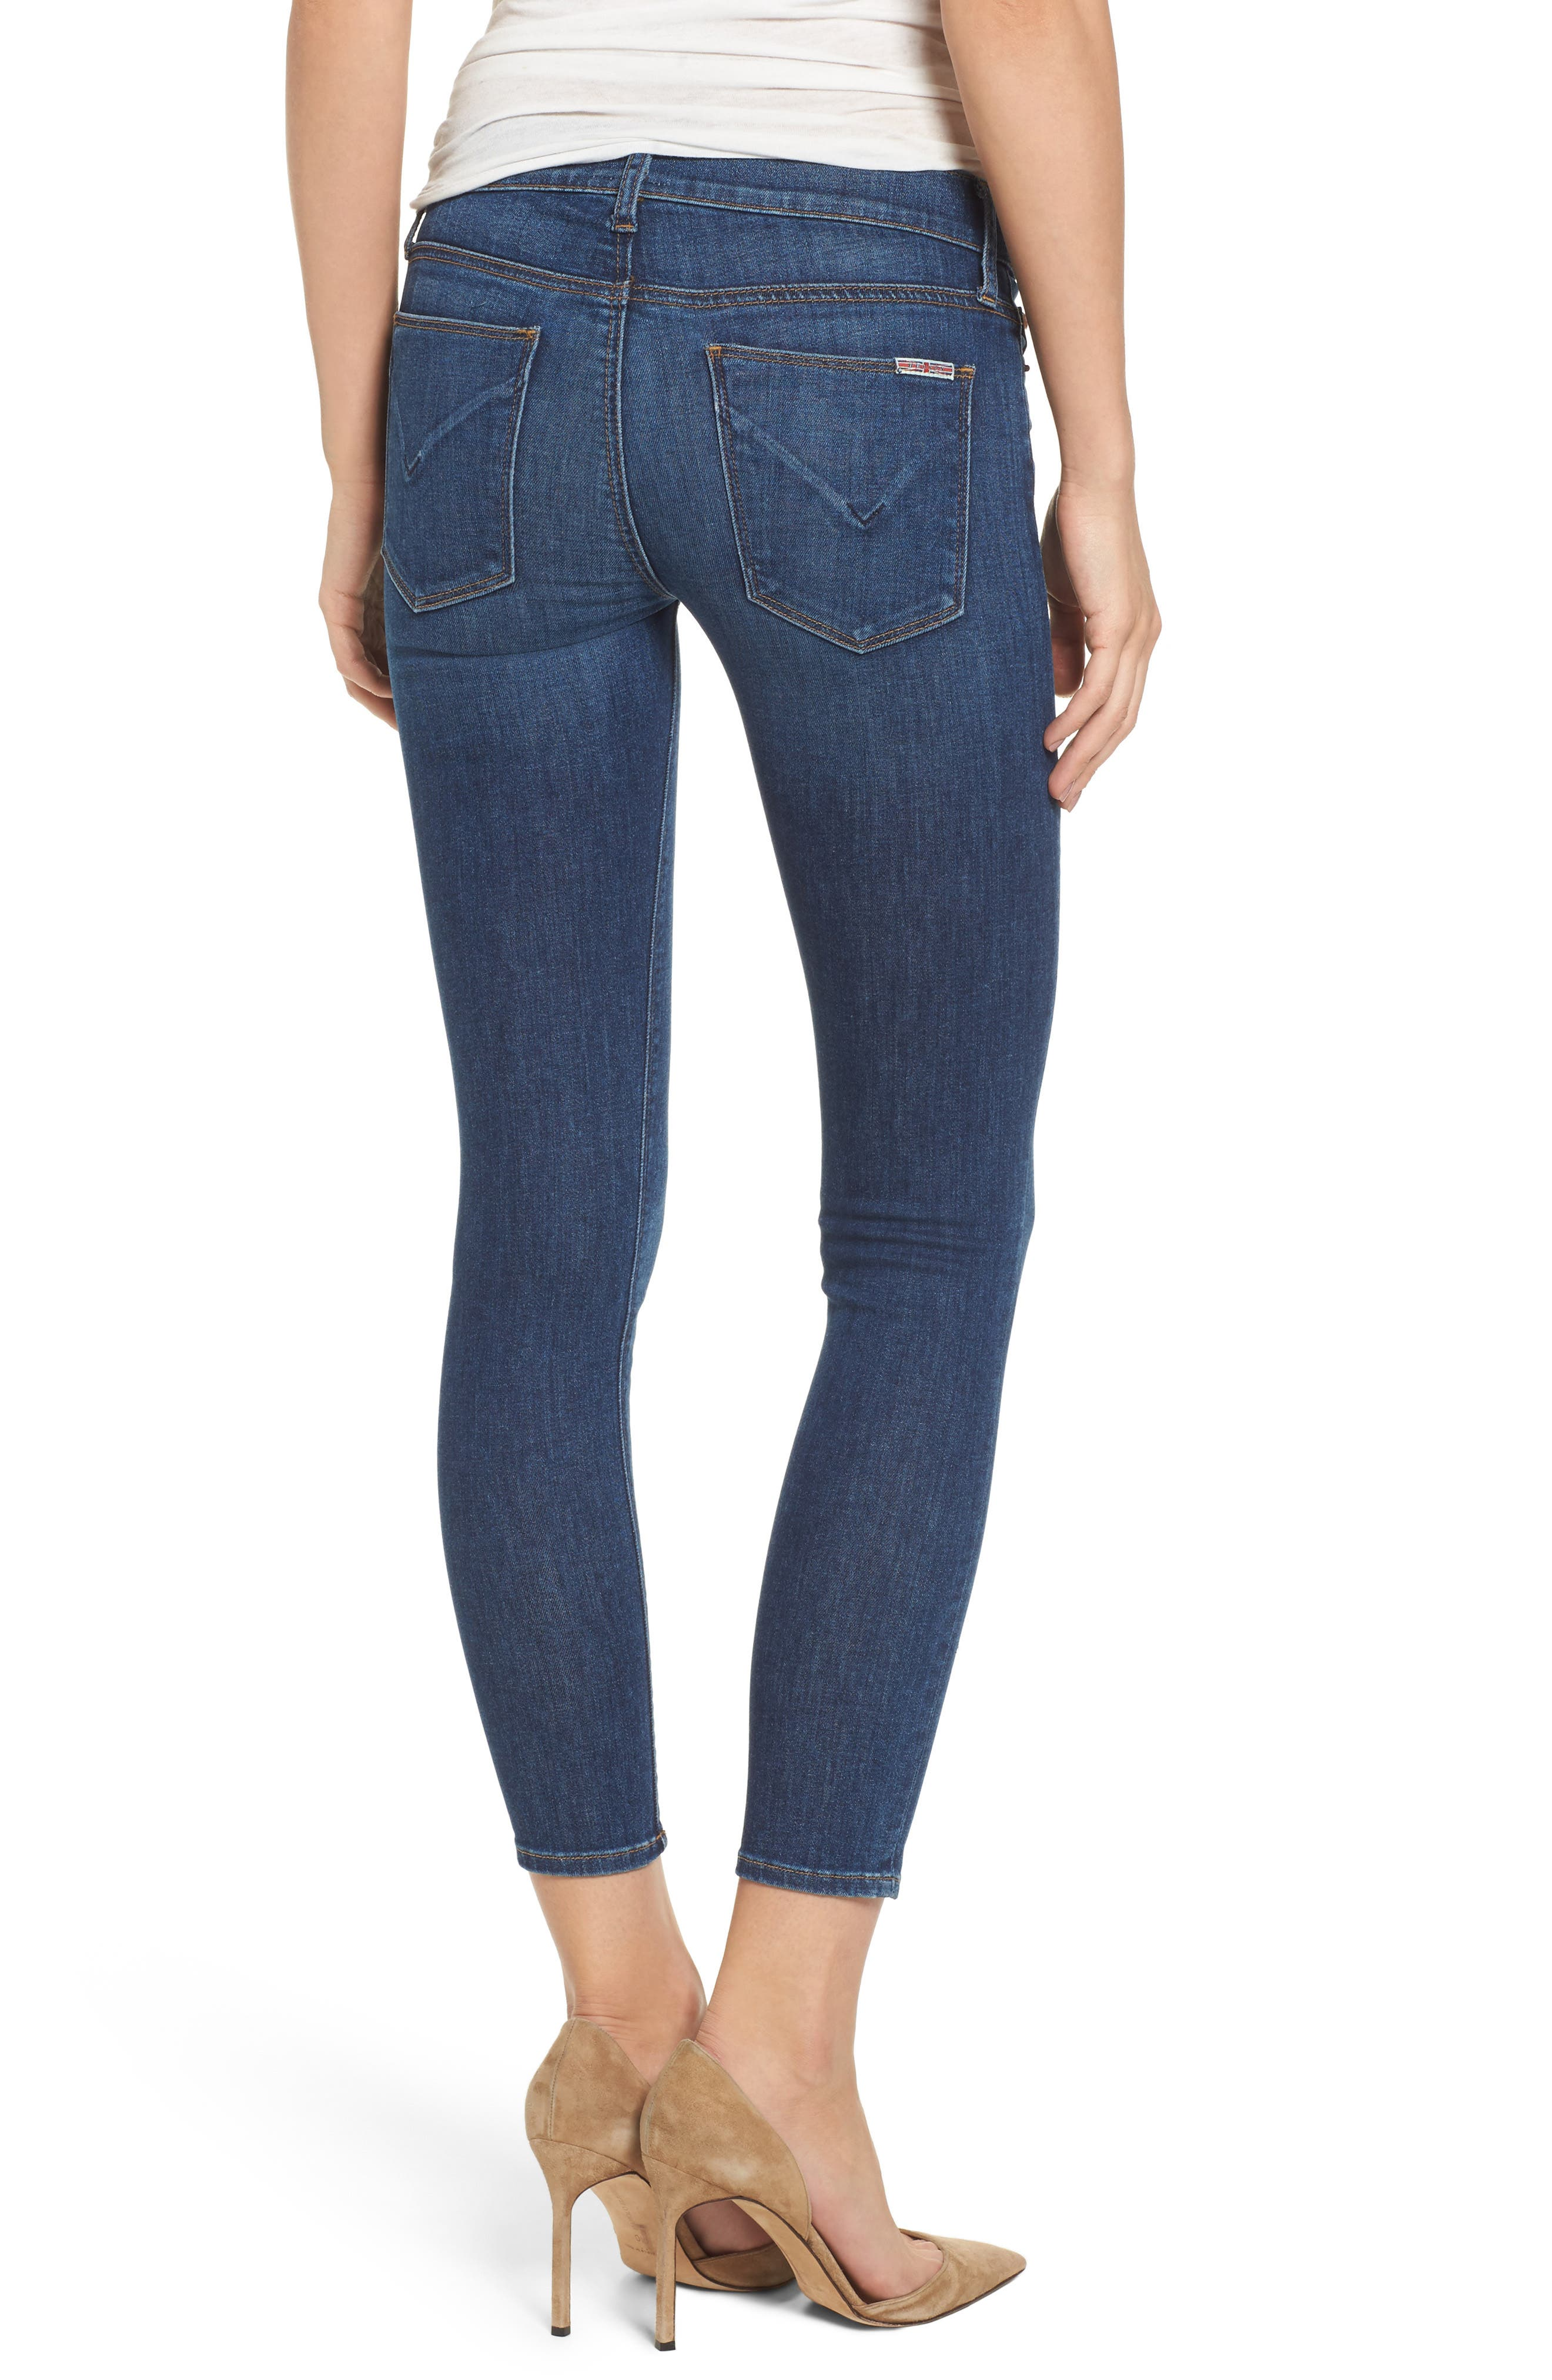 Krista Ankle Super Skinny Jeans,                             Alternate thumbnail 2, color,                             420